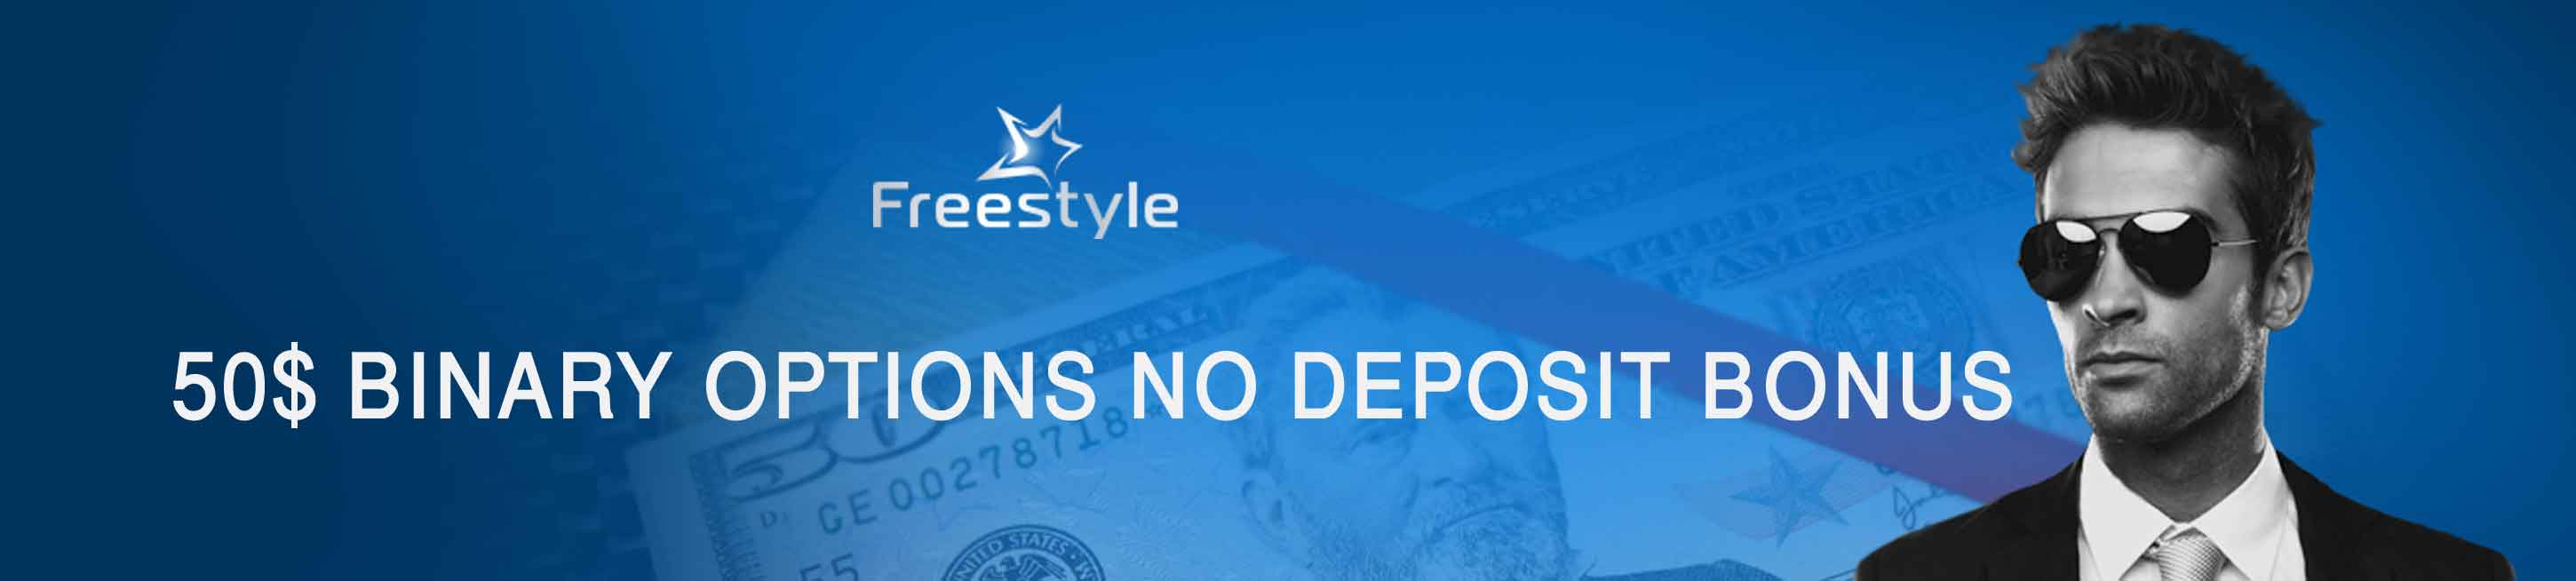 Free no deposit bonus binary options